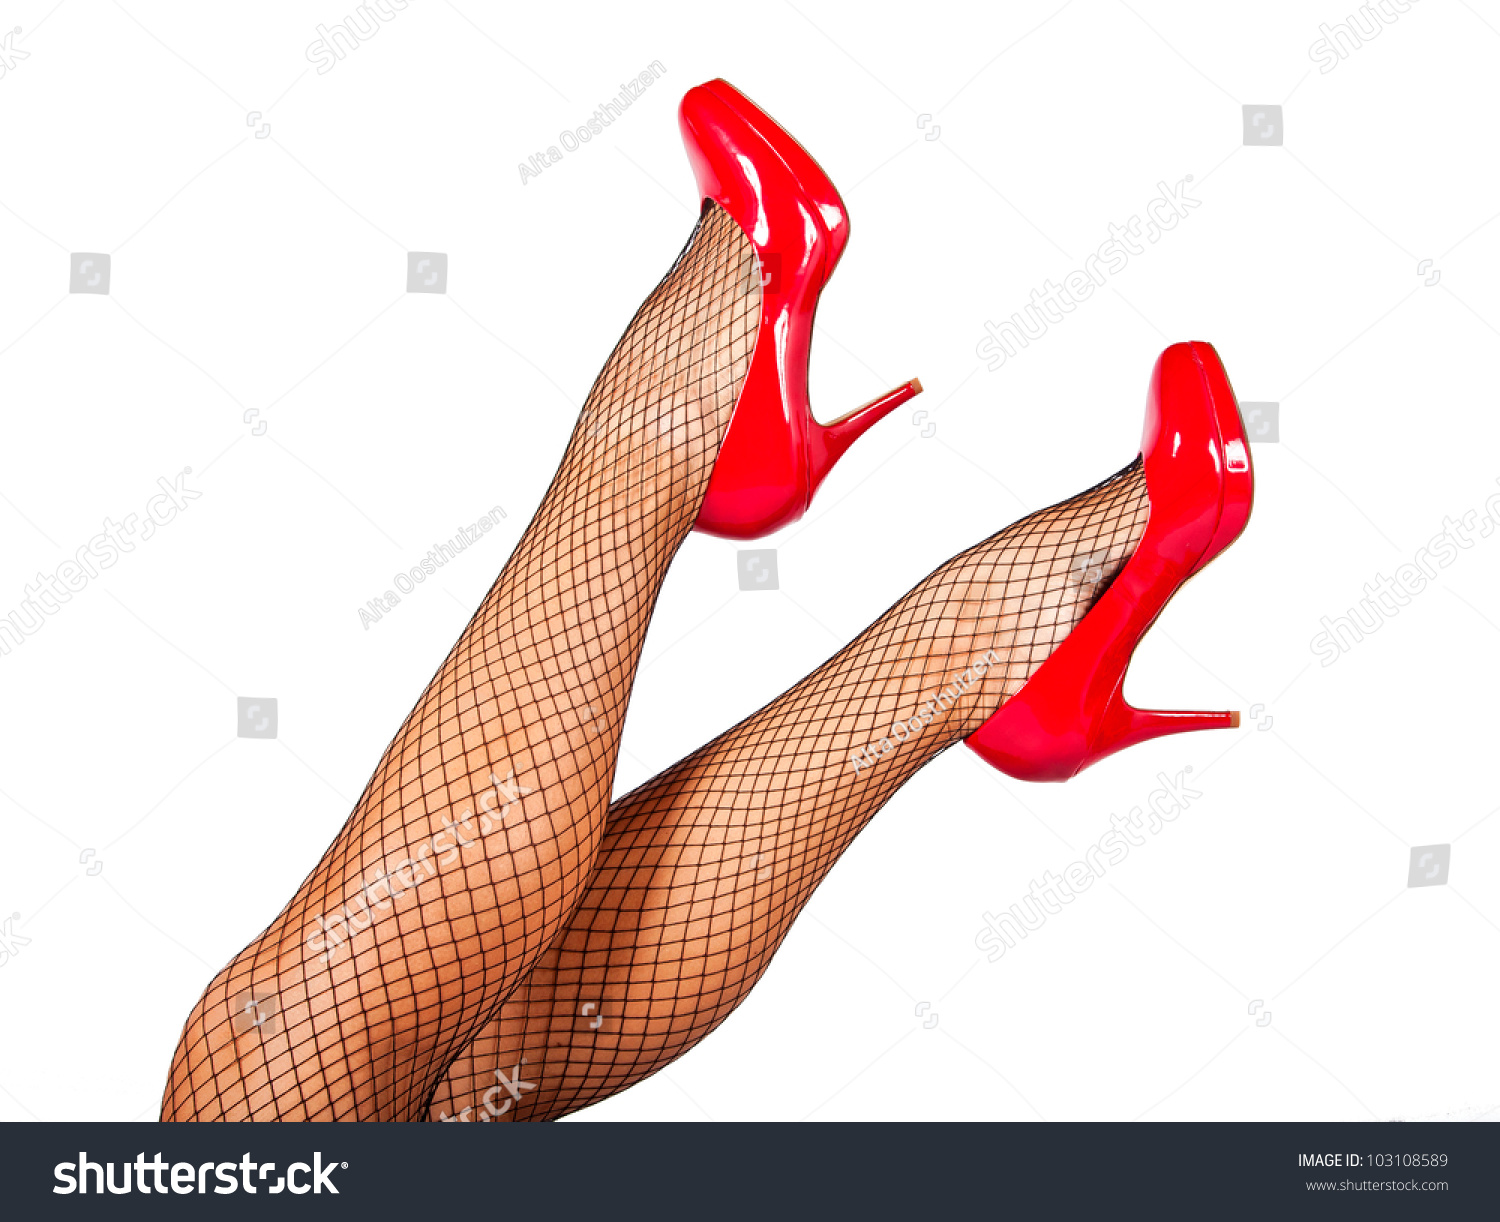 Red Shoes And Black Stockings Looking Sexy Stock Photo 103108589 ...